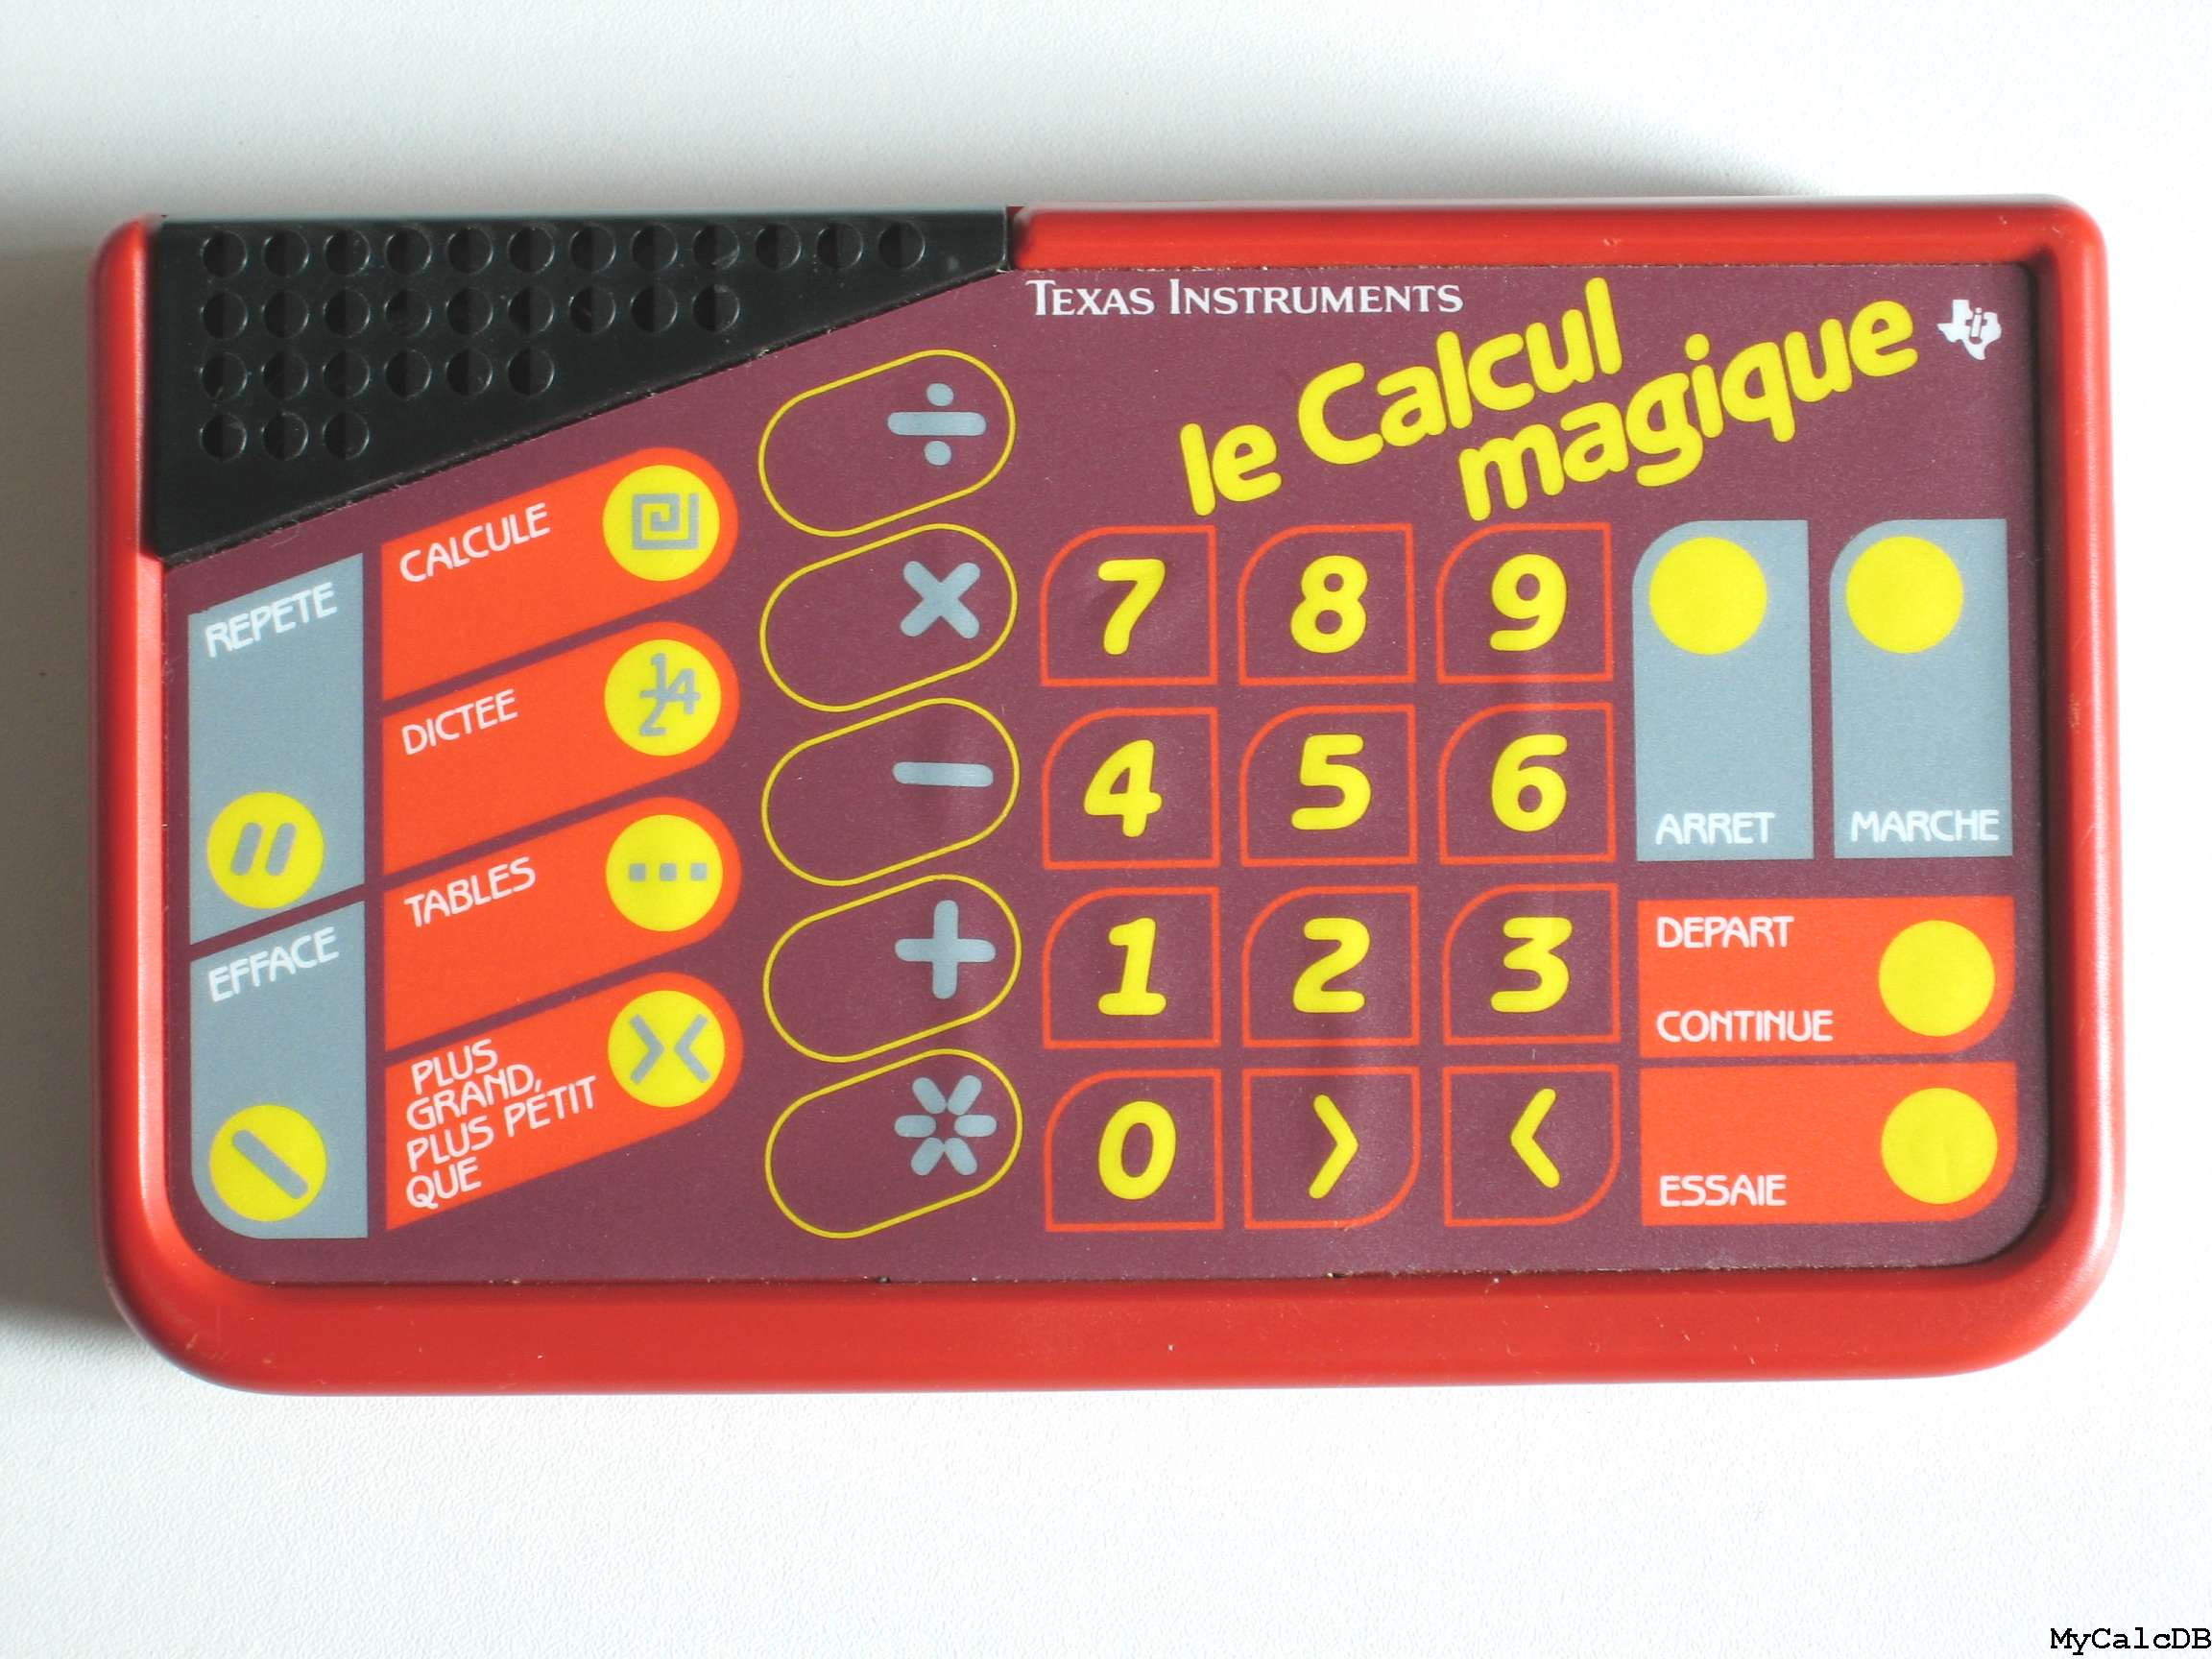 Calcul casing